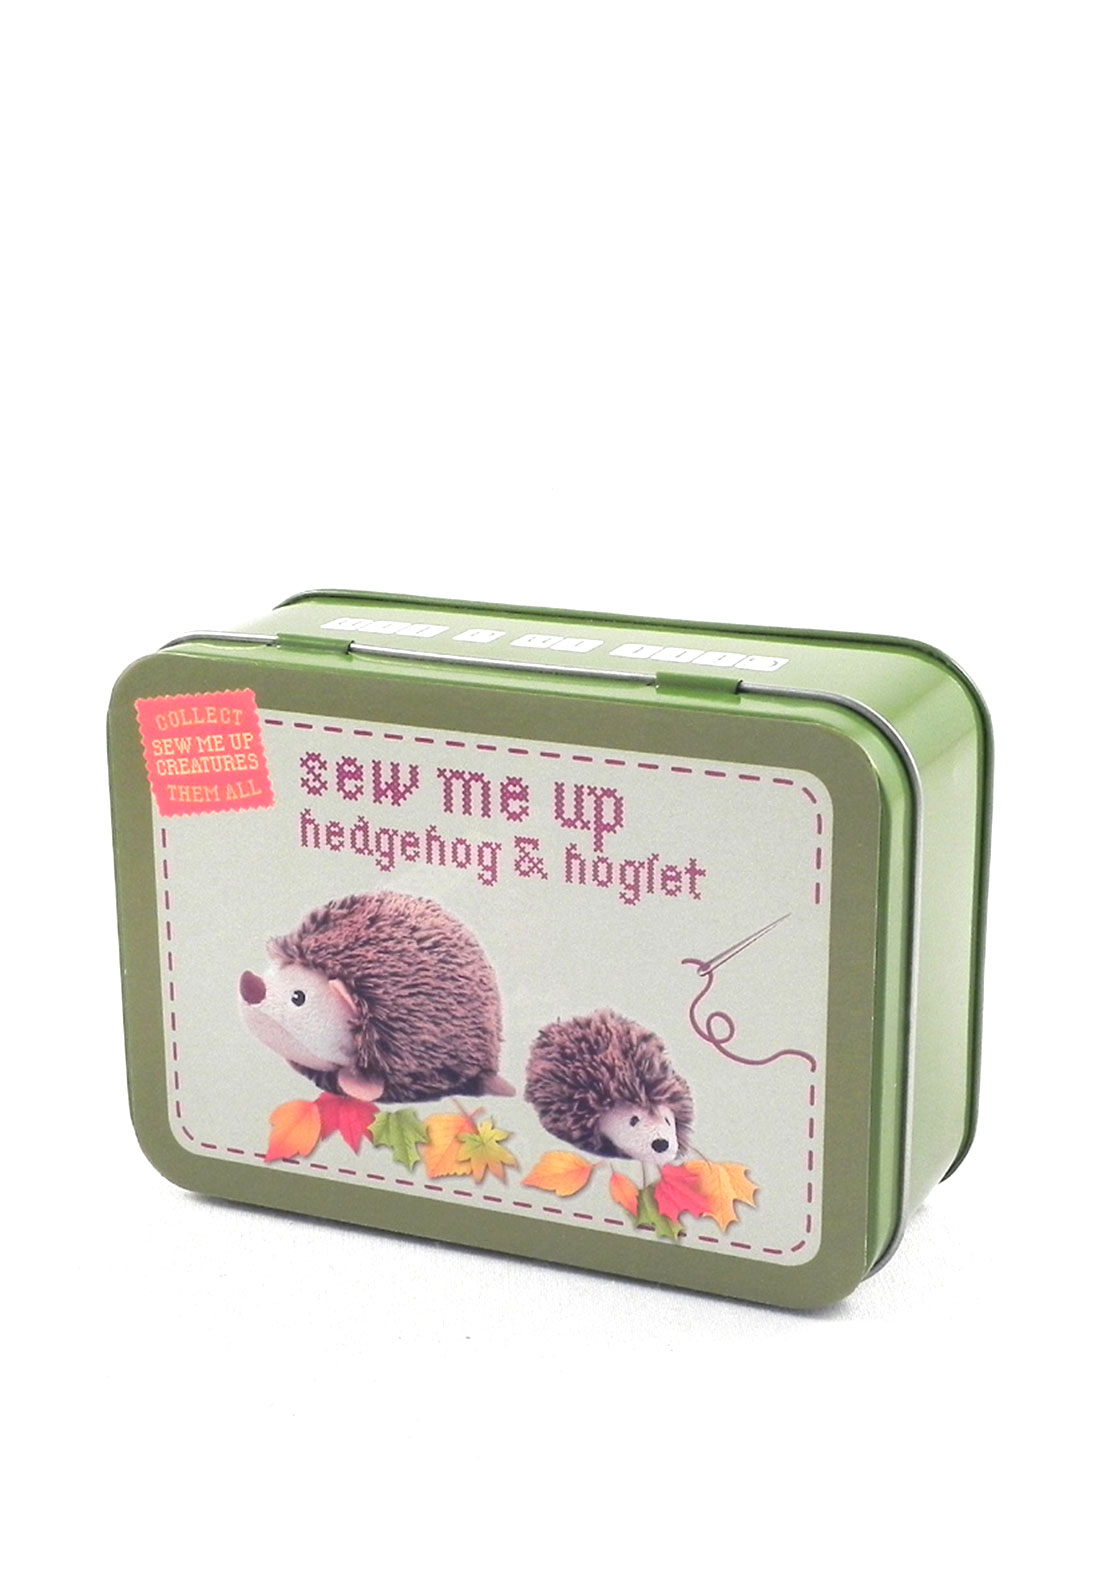 Apple to Pears Hedgehog & Hoglet Sewing Kit